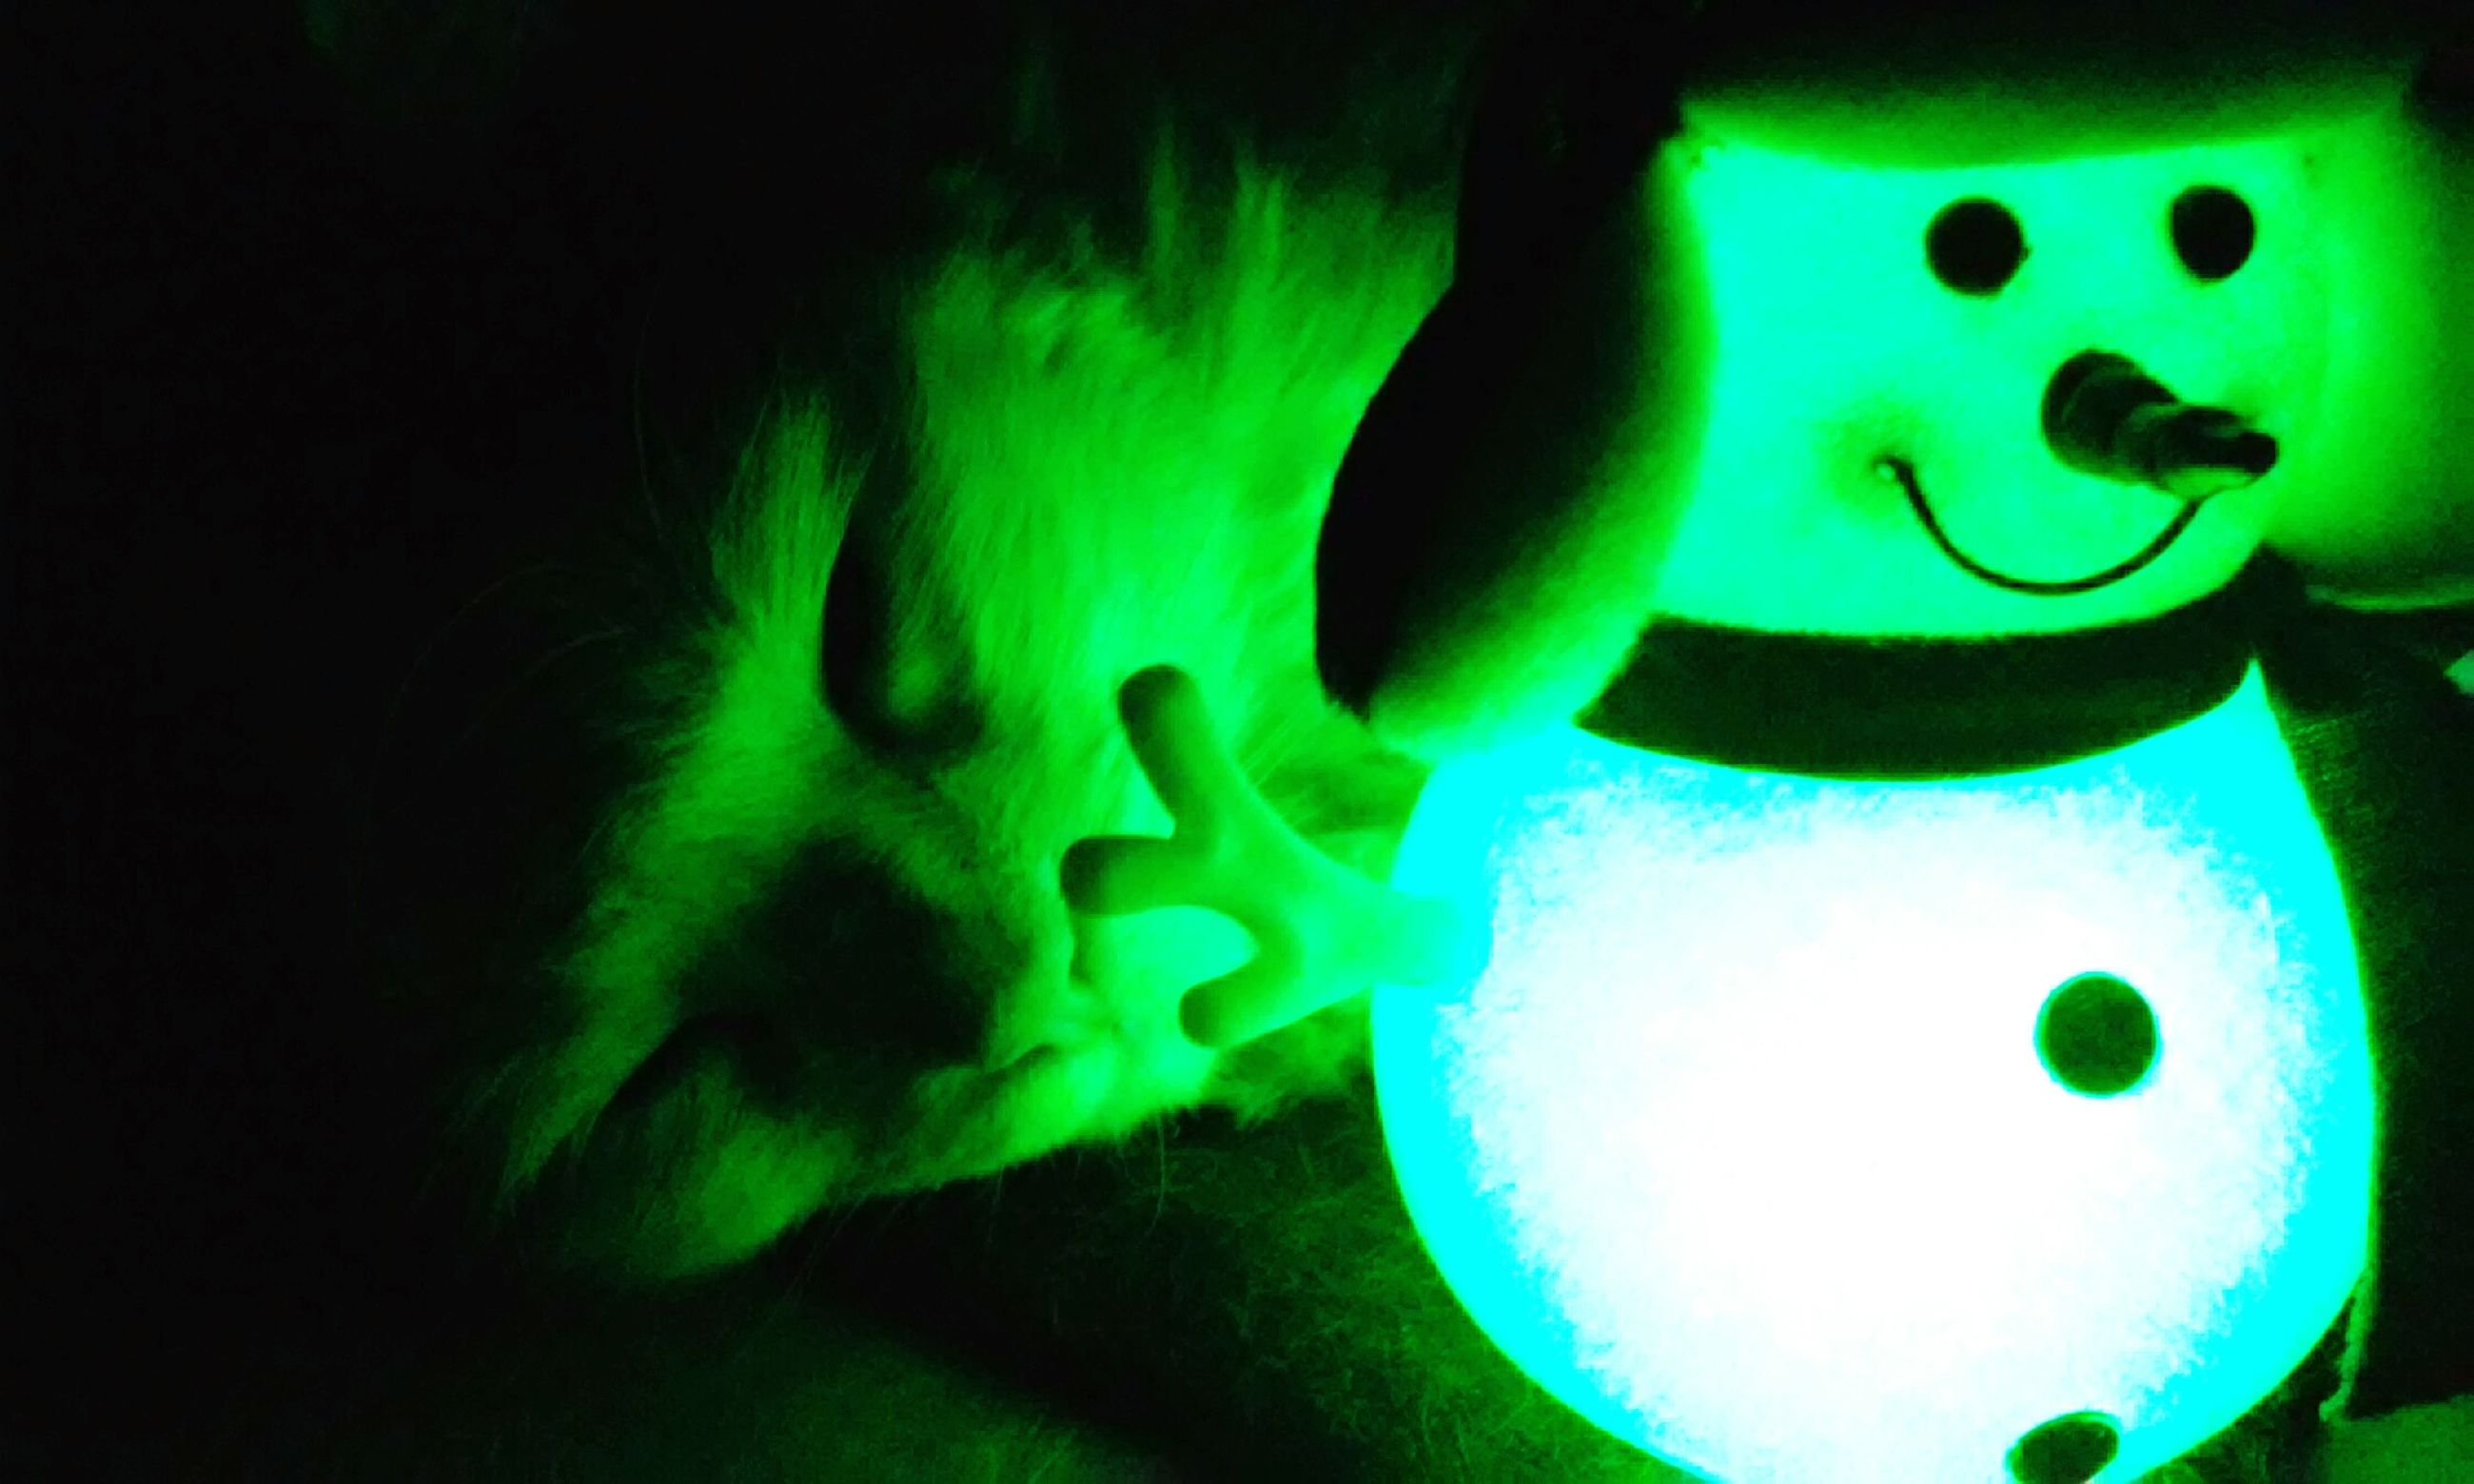 illuminated, indoors, creativity, art, human representation, art and craft, night, multi colored, animal representation, close-up, green color, toy, communication, arts culture and entertainment, text, neon, celebration, blue, glowing